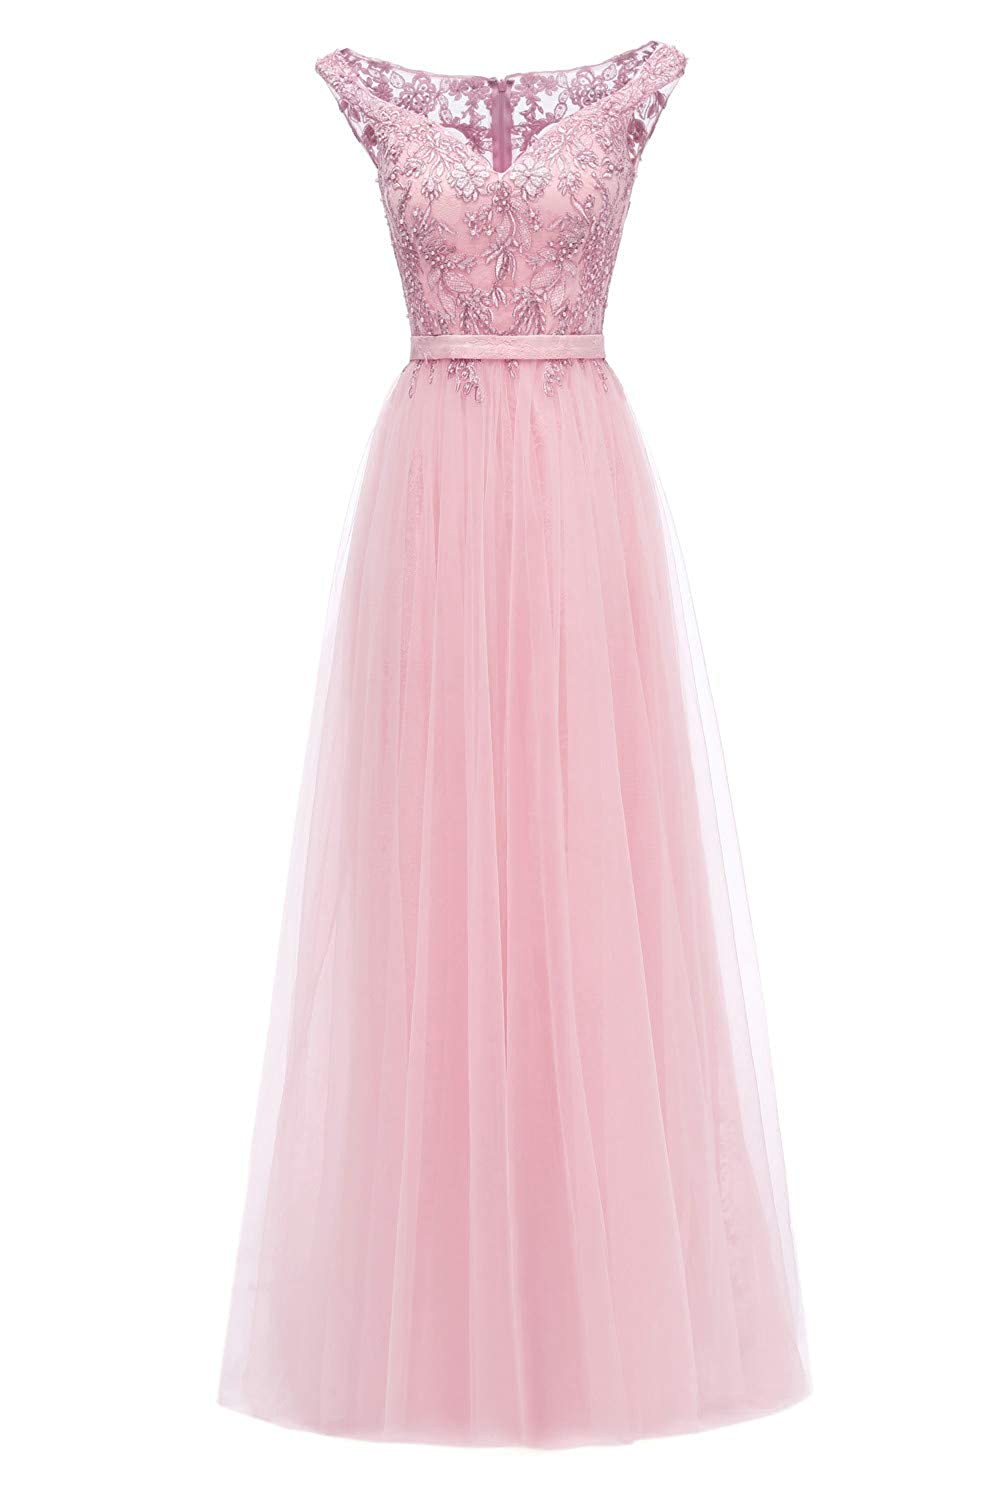 bluesh Pink color 95 Huifany Womens VNeck Cap Sleeve Lace Prom Bridesmaid Dresses Long Formal Evening Ball Gowns